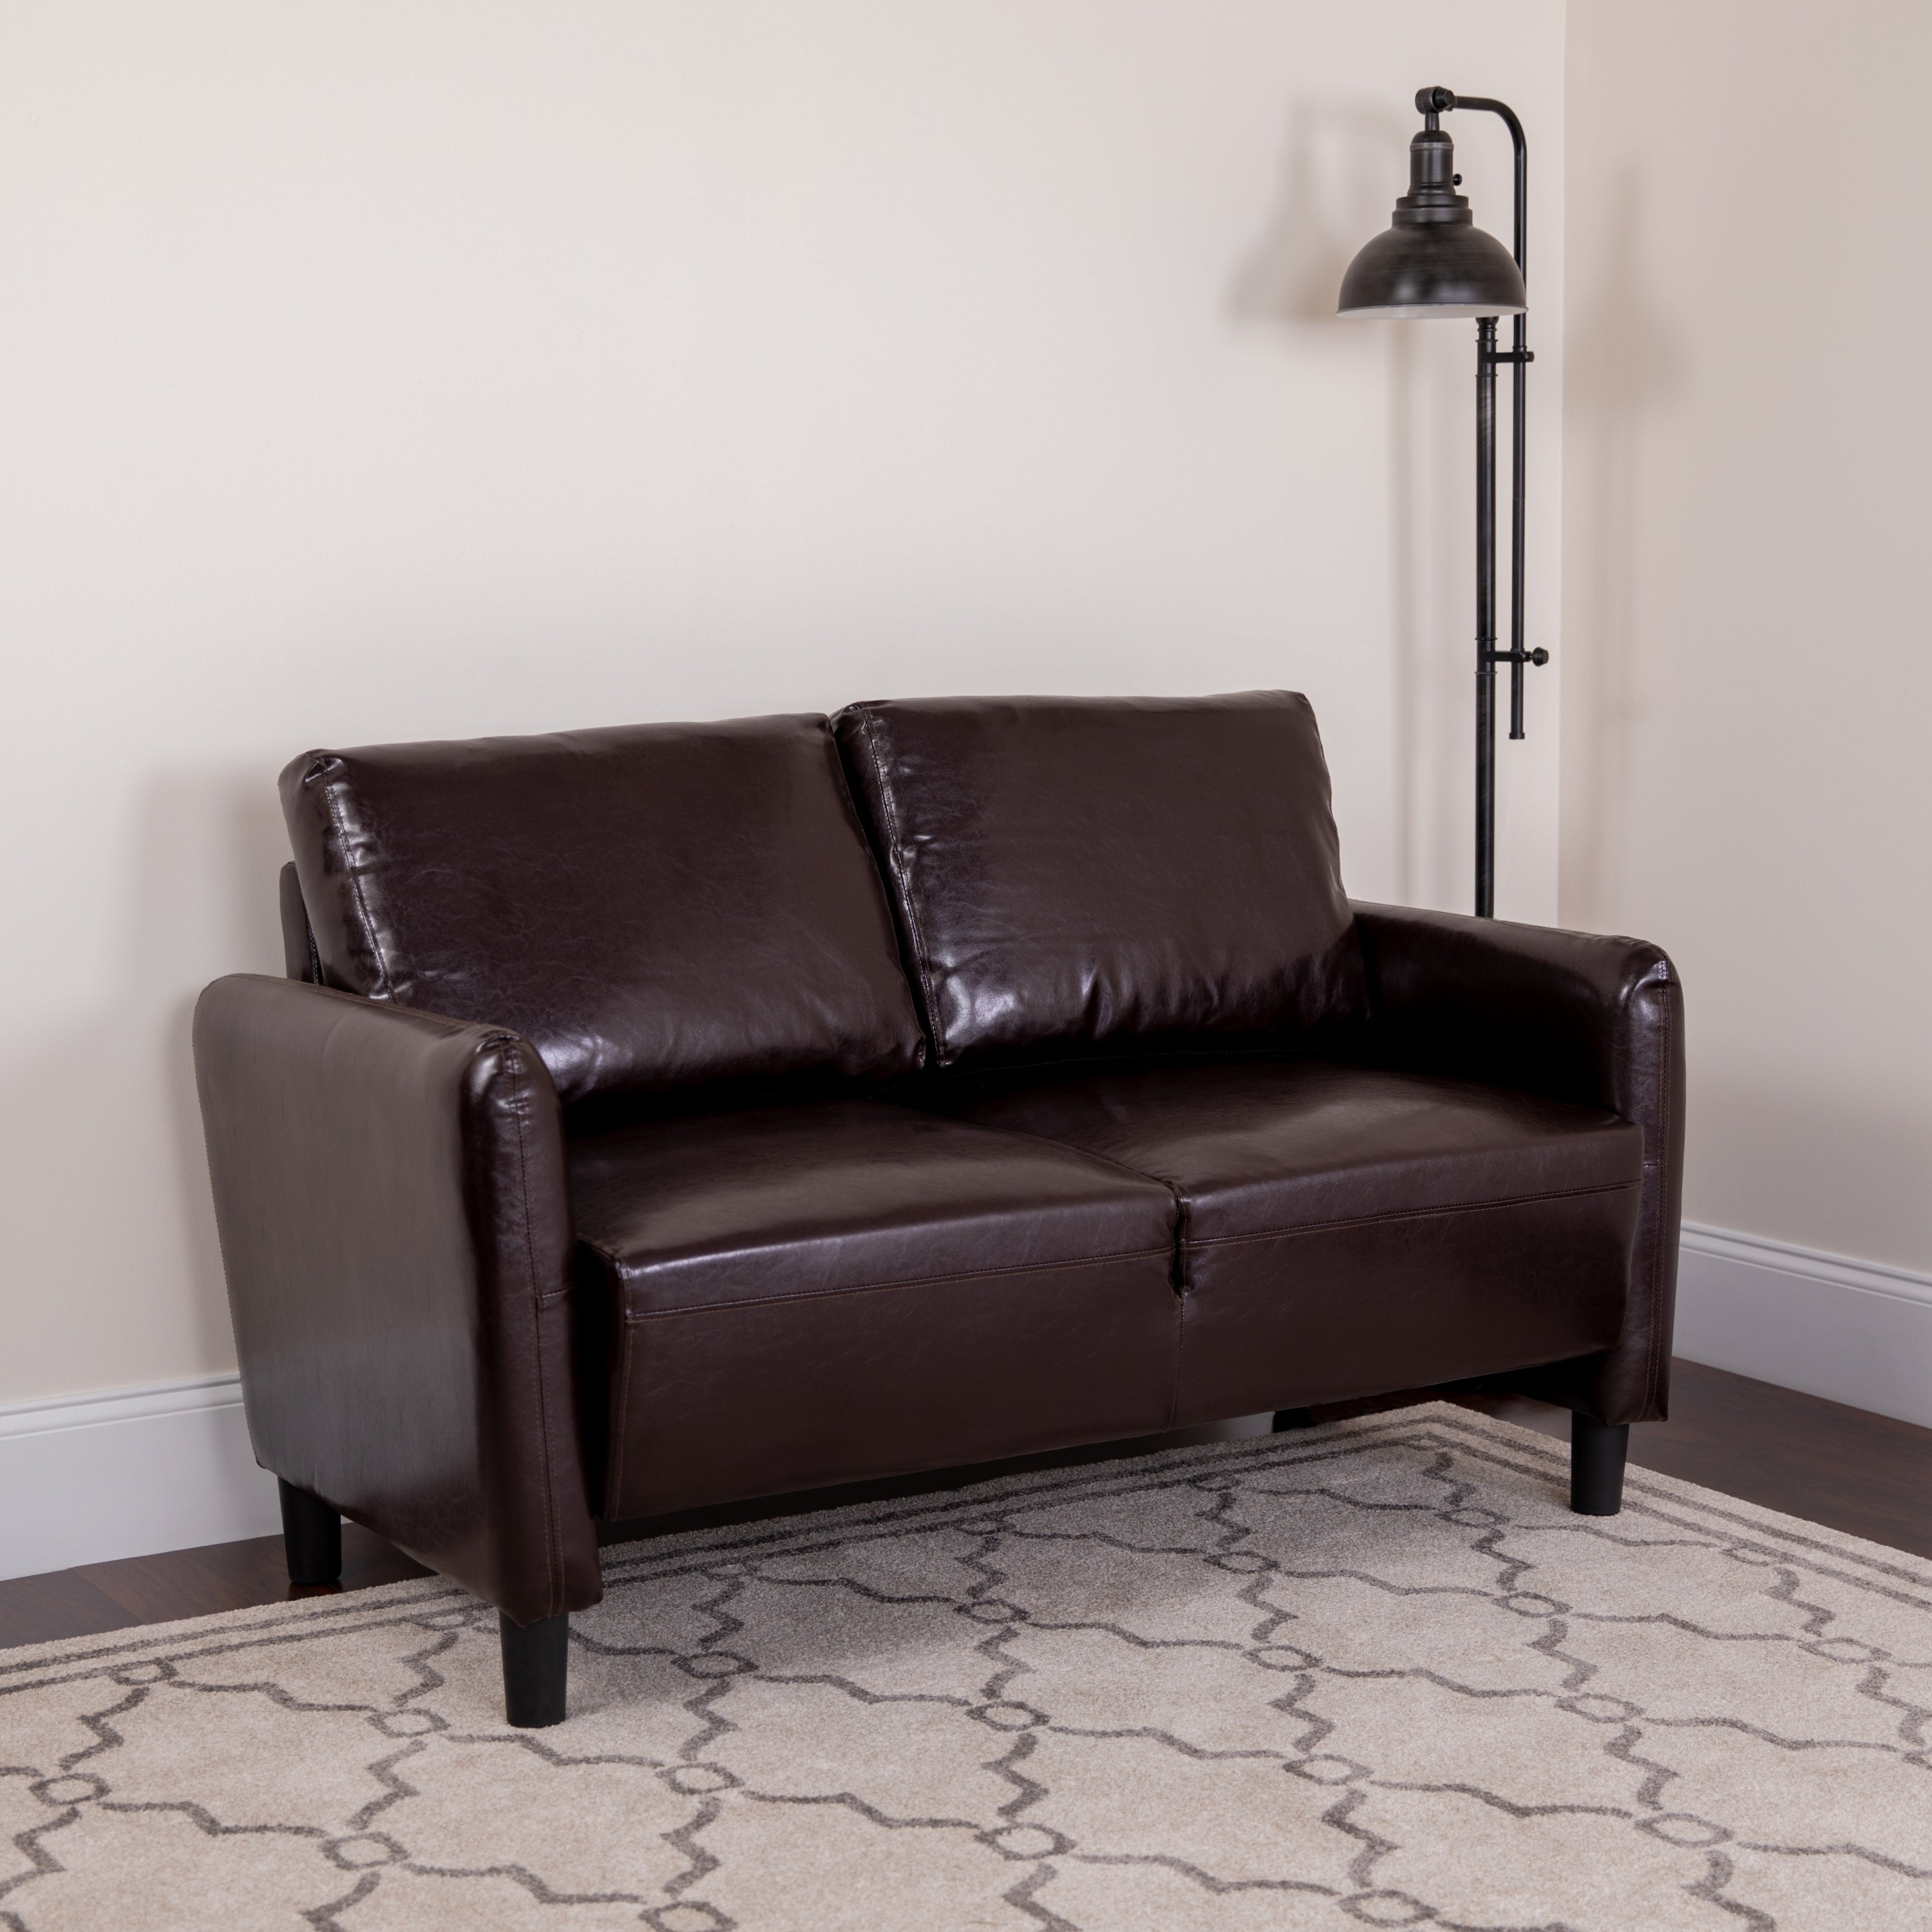 Fine Buy Faux Leather Loveseats Online At Overstock Our Best Squirreltailoven Fun Painted Chair Ideas Images Squirreltailovenorg